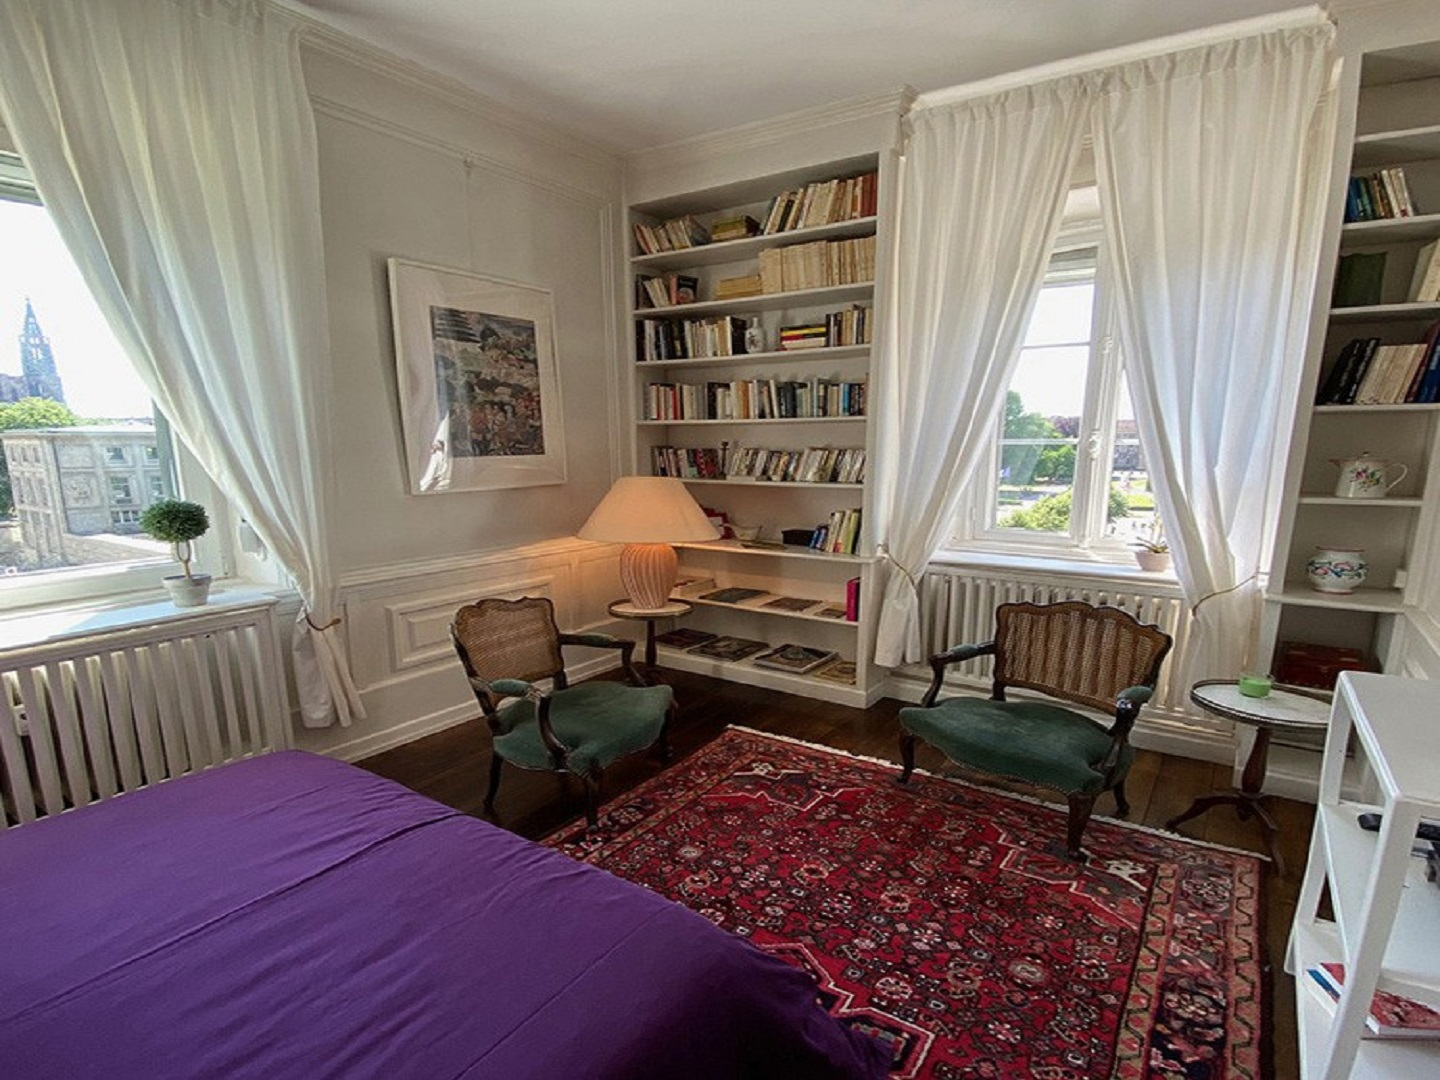 A bedroom with a bed and a chair in a room at LES LUMIERES DE LA VILLE.